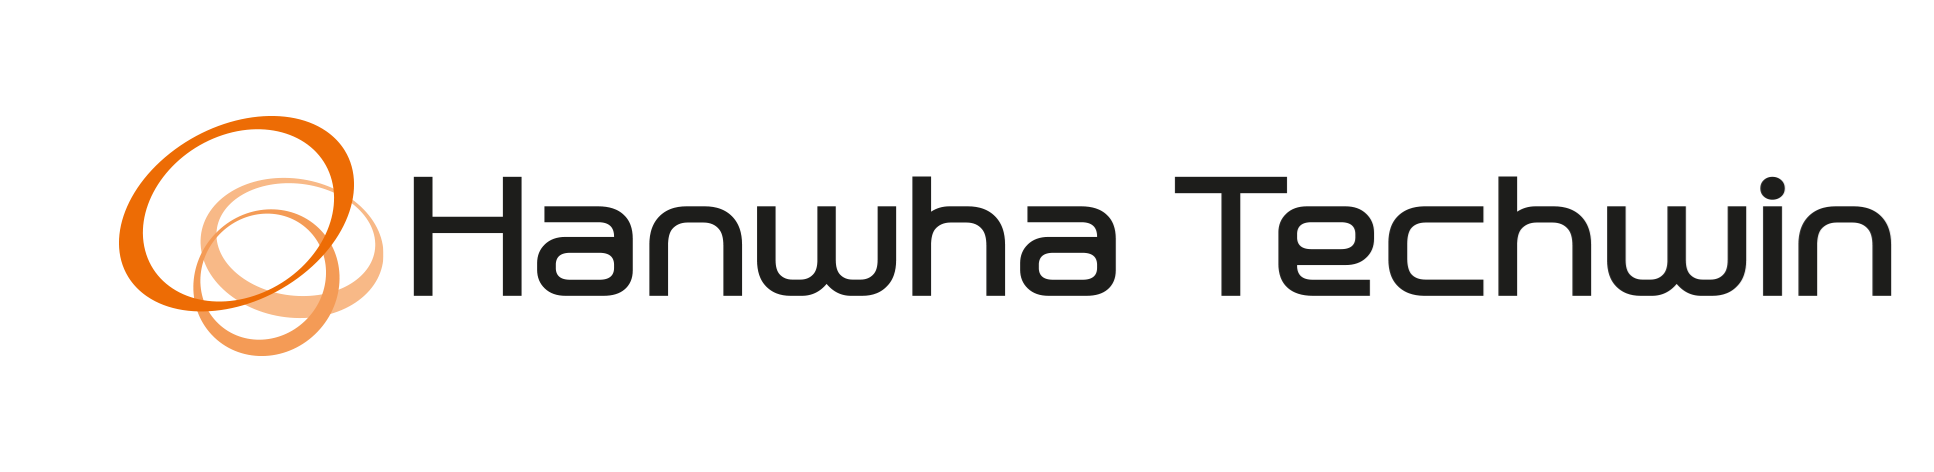 Logo hanwha techwin Transparent